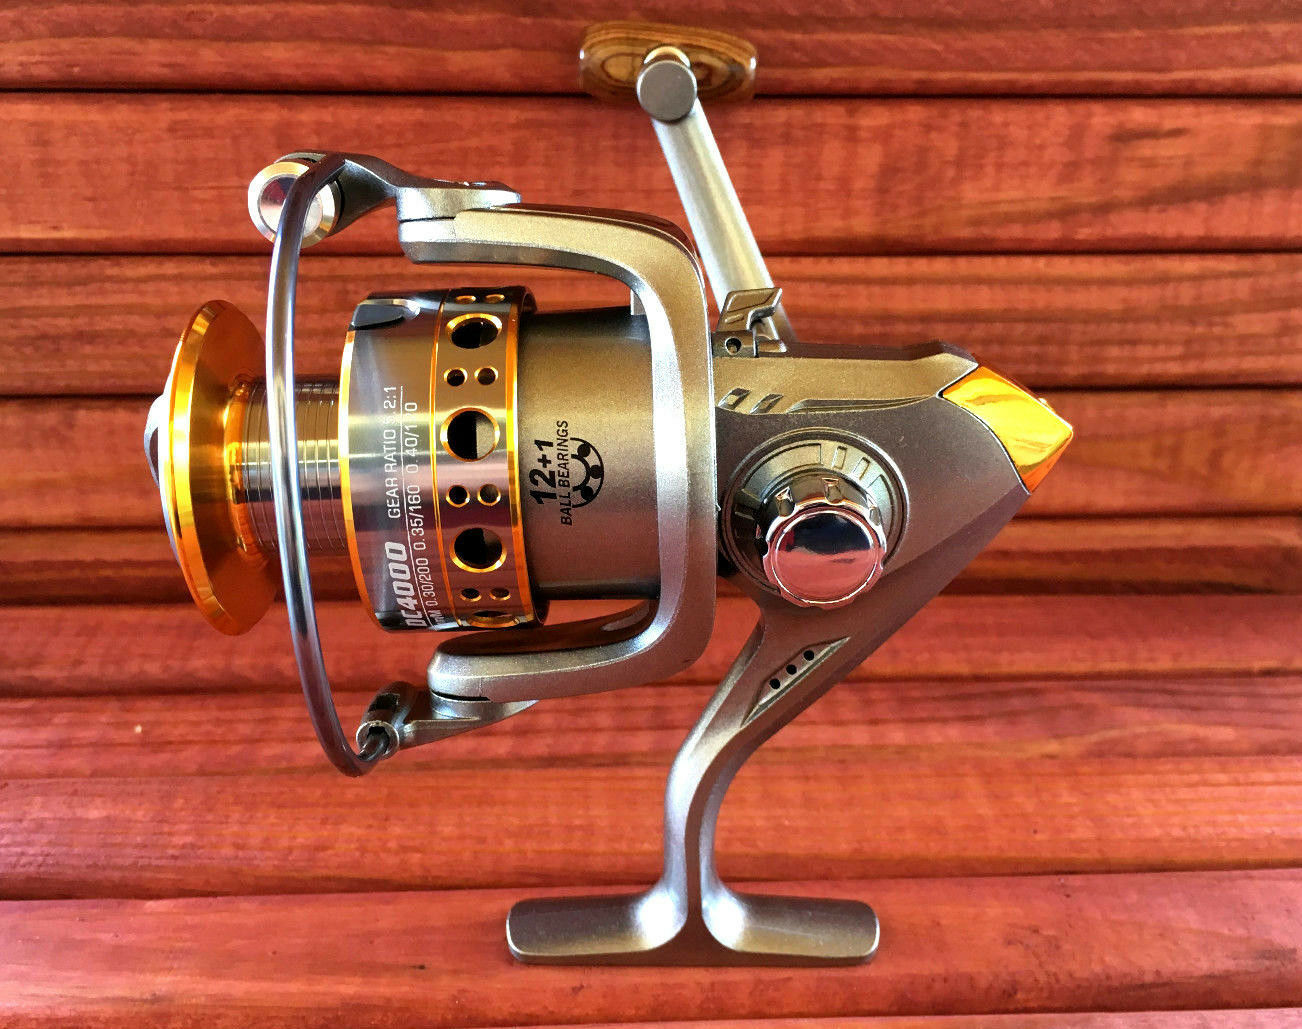 DC4000 Series Fishing Reel, Spinning Reel, 12+1 BB Ball Bearing